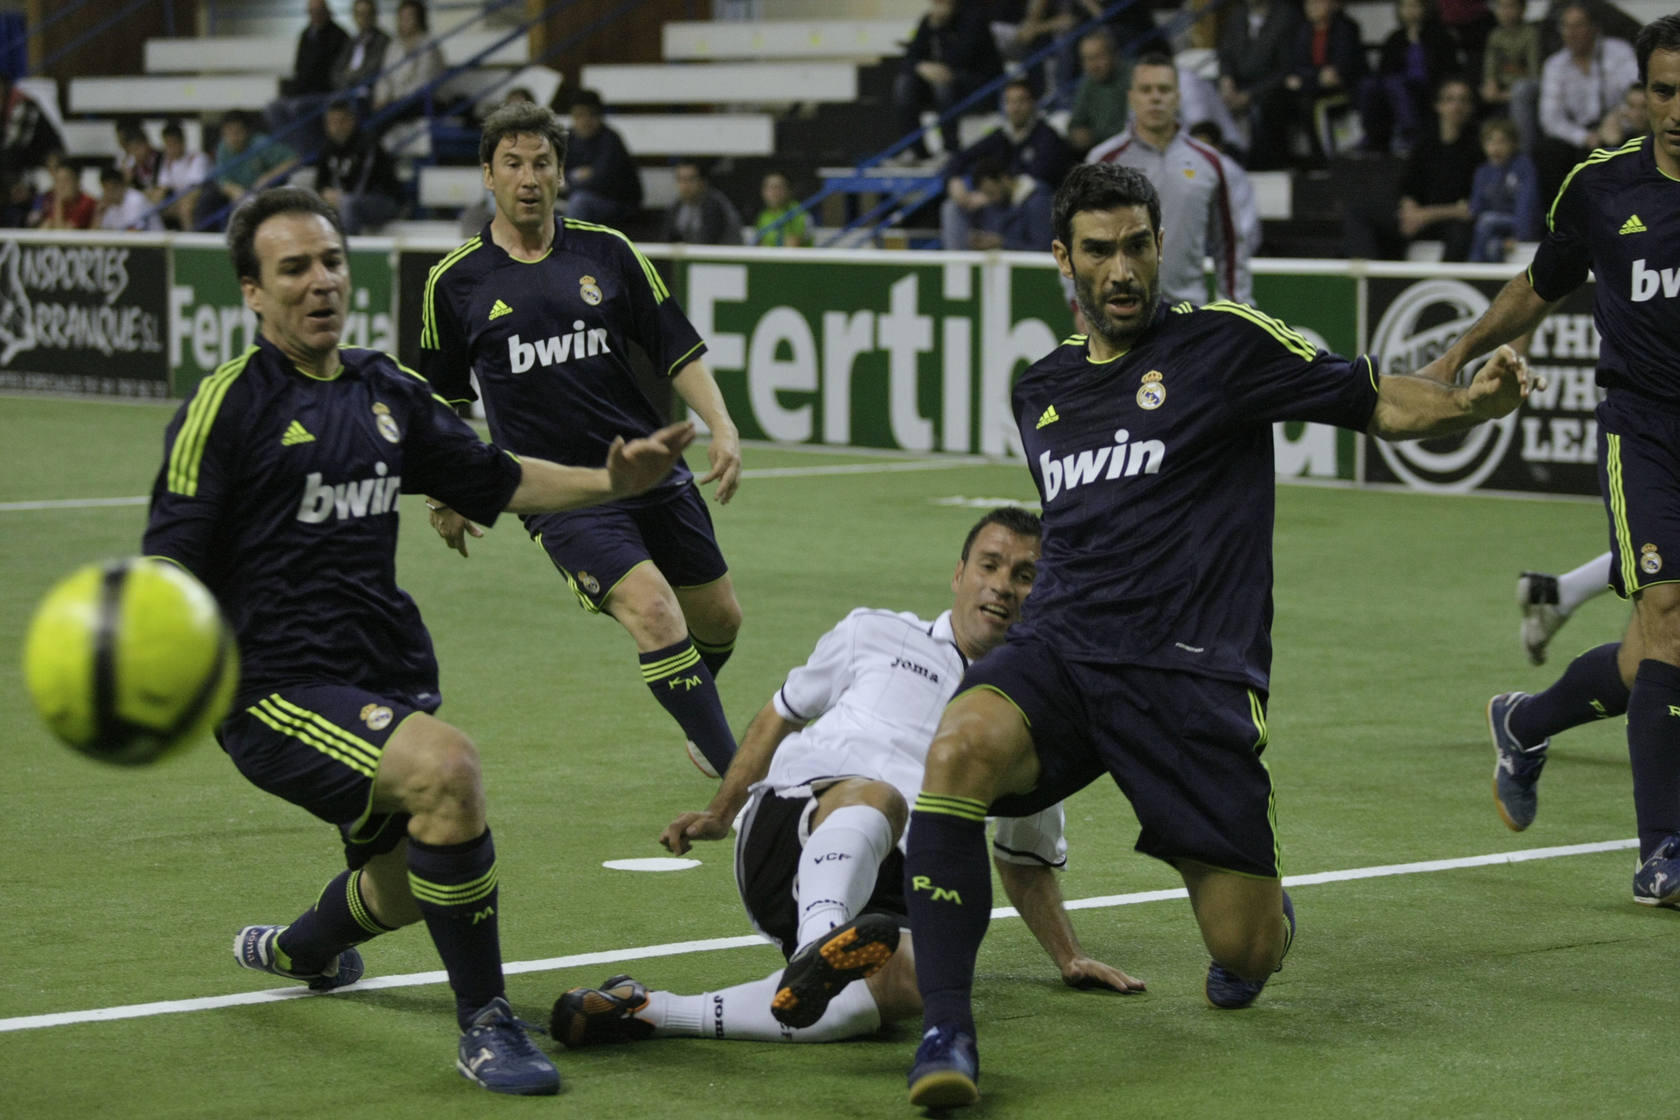 F&uacute;tbol Indoor en Gandia (Valencia-Real Madrid)